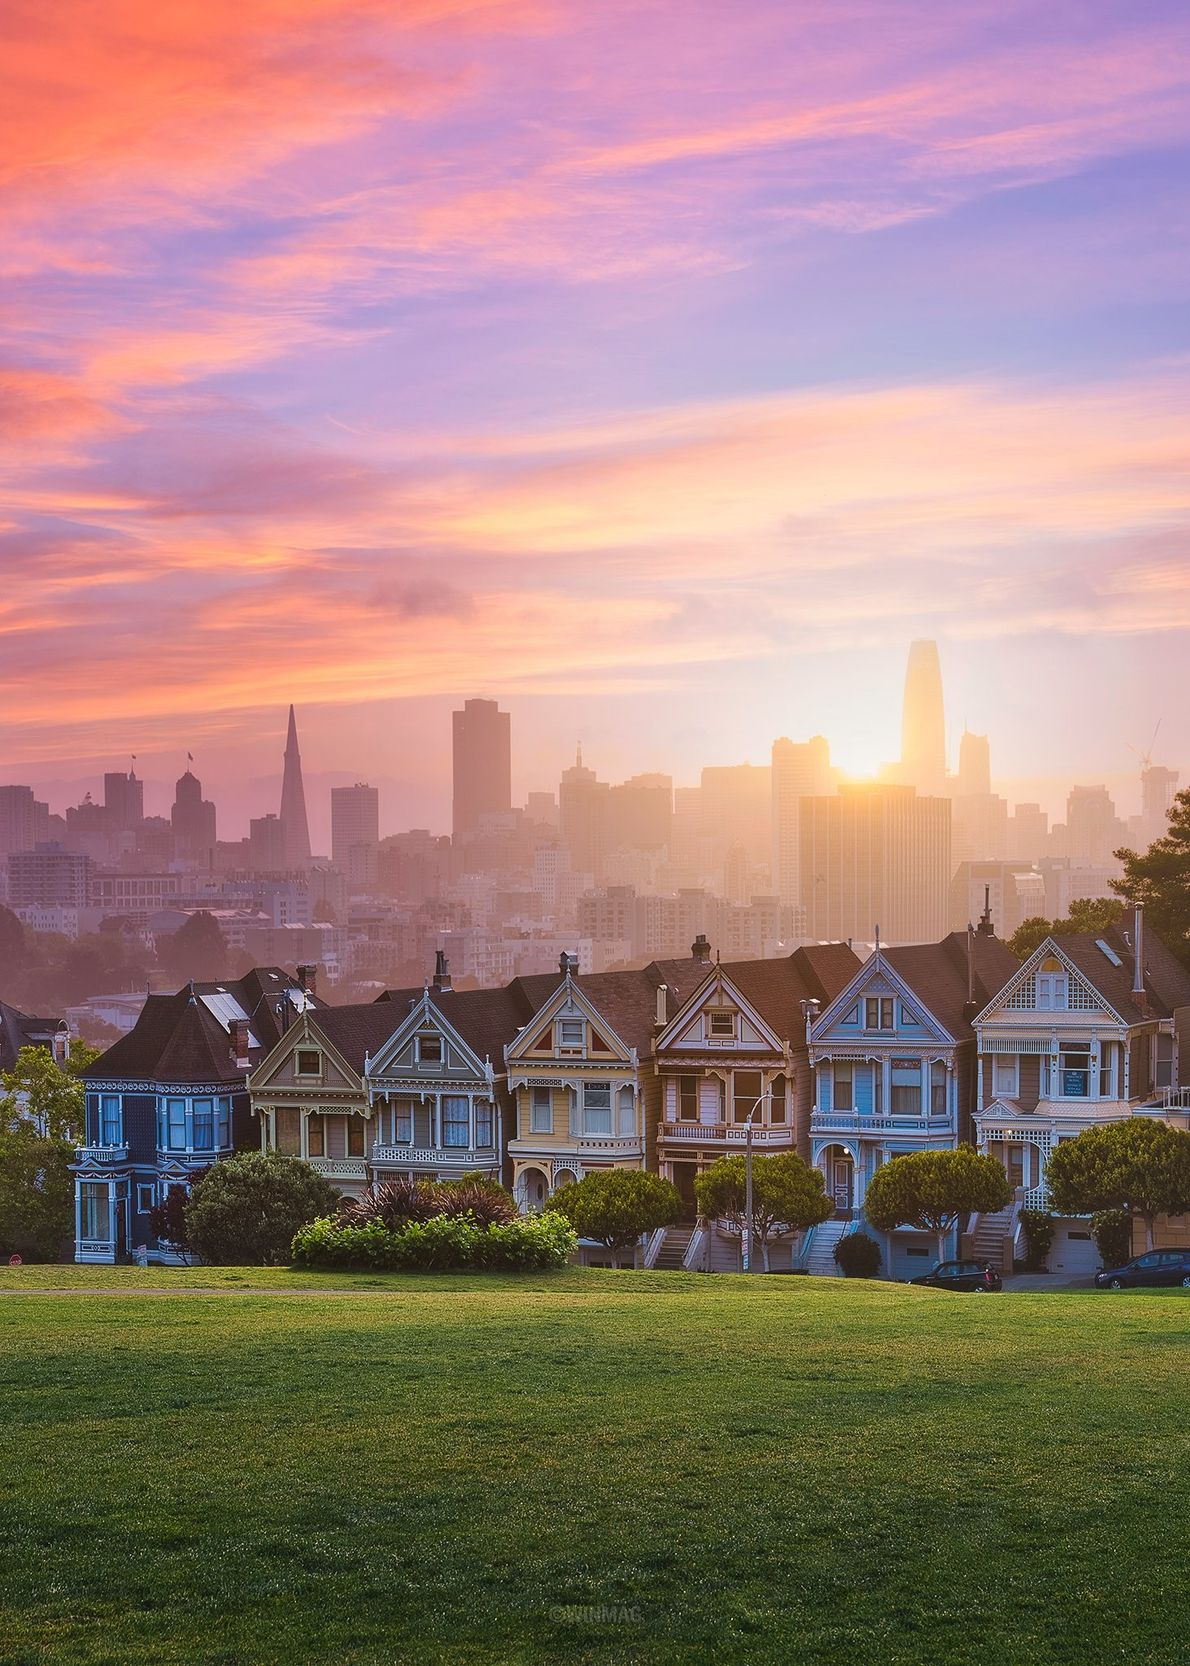 Your Shot photographer Win Magsino made this sunrise image at the Painted Ladies landmark in San ...